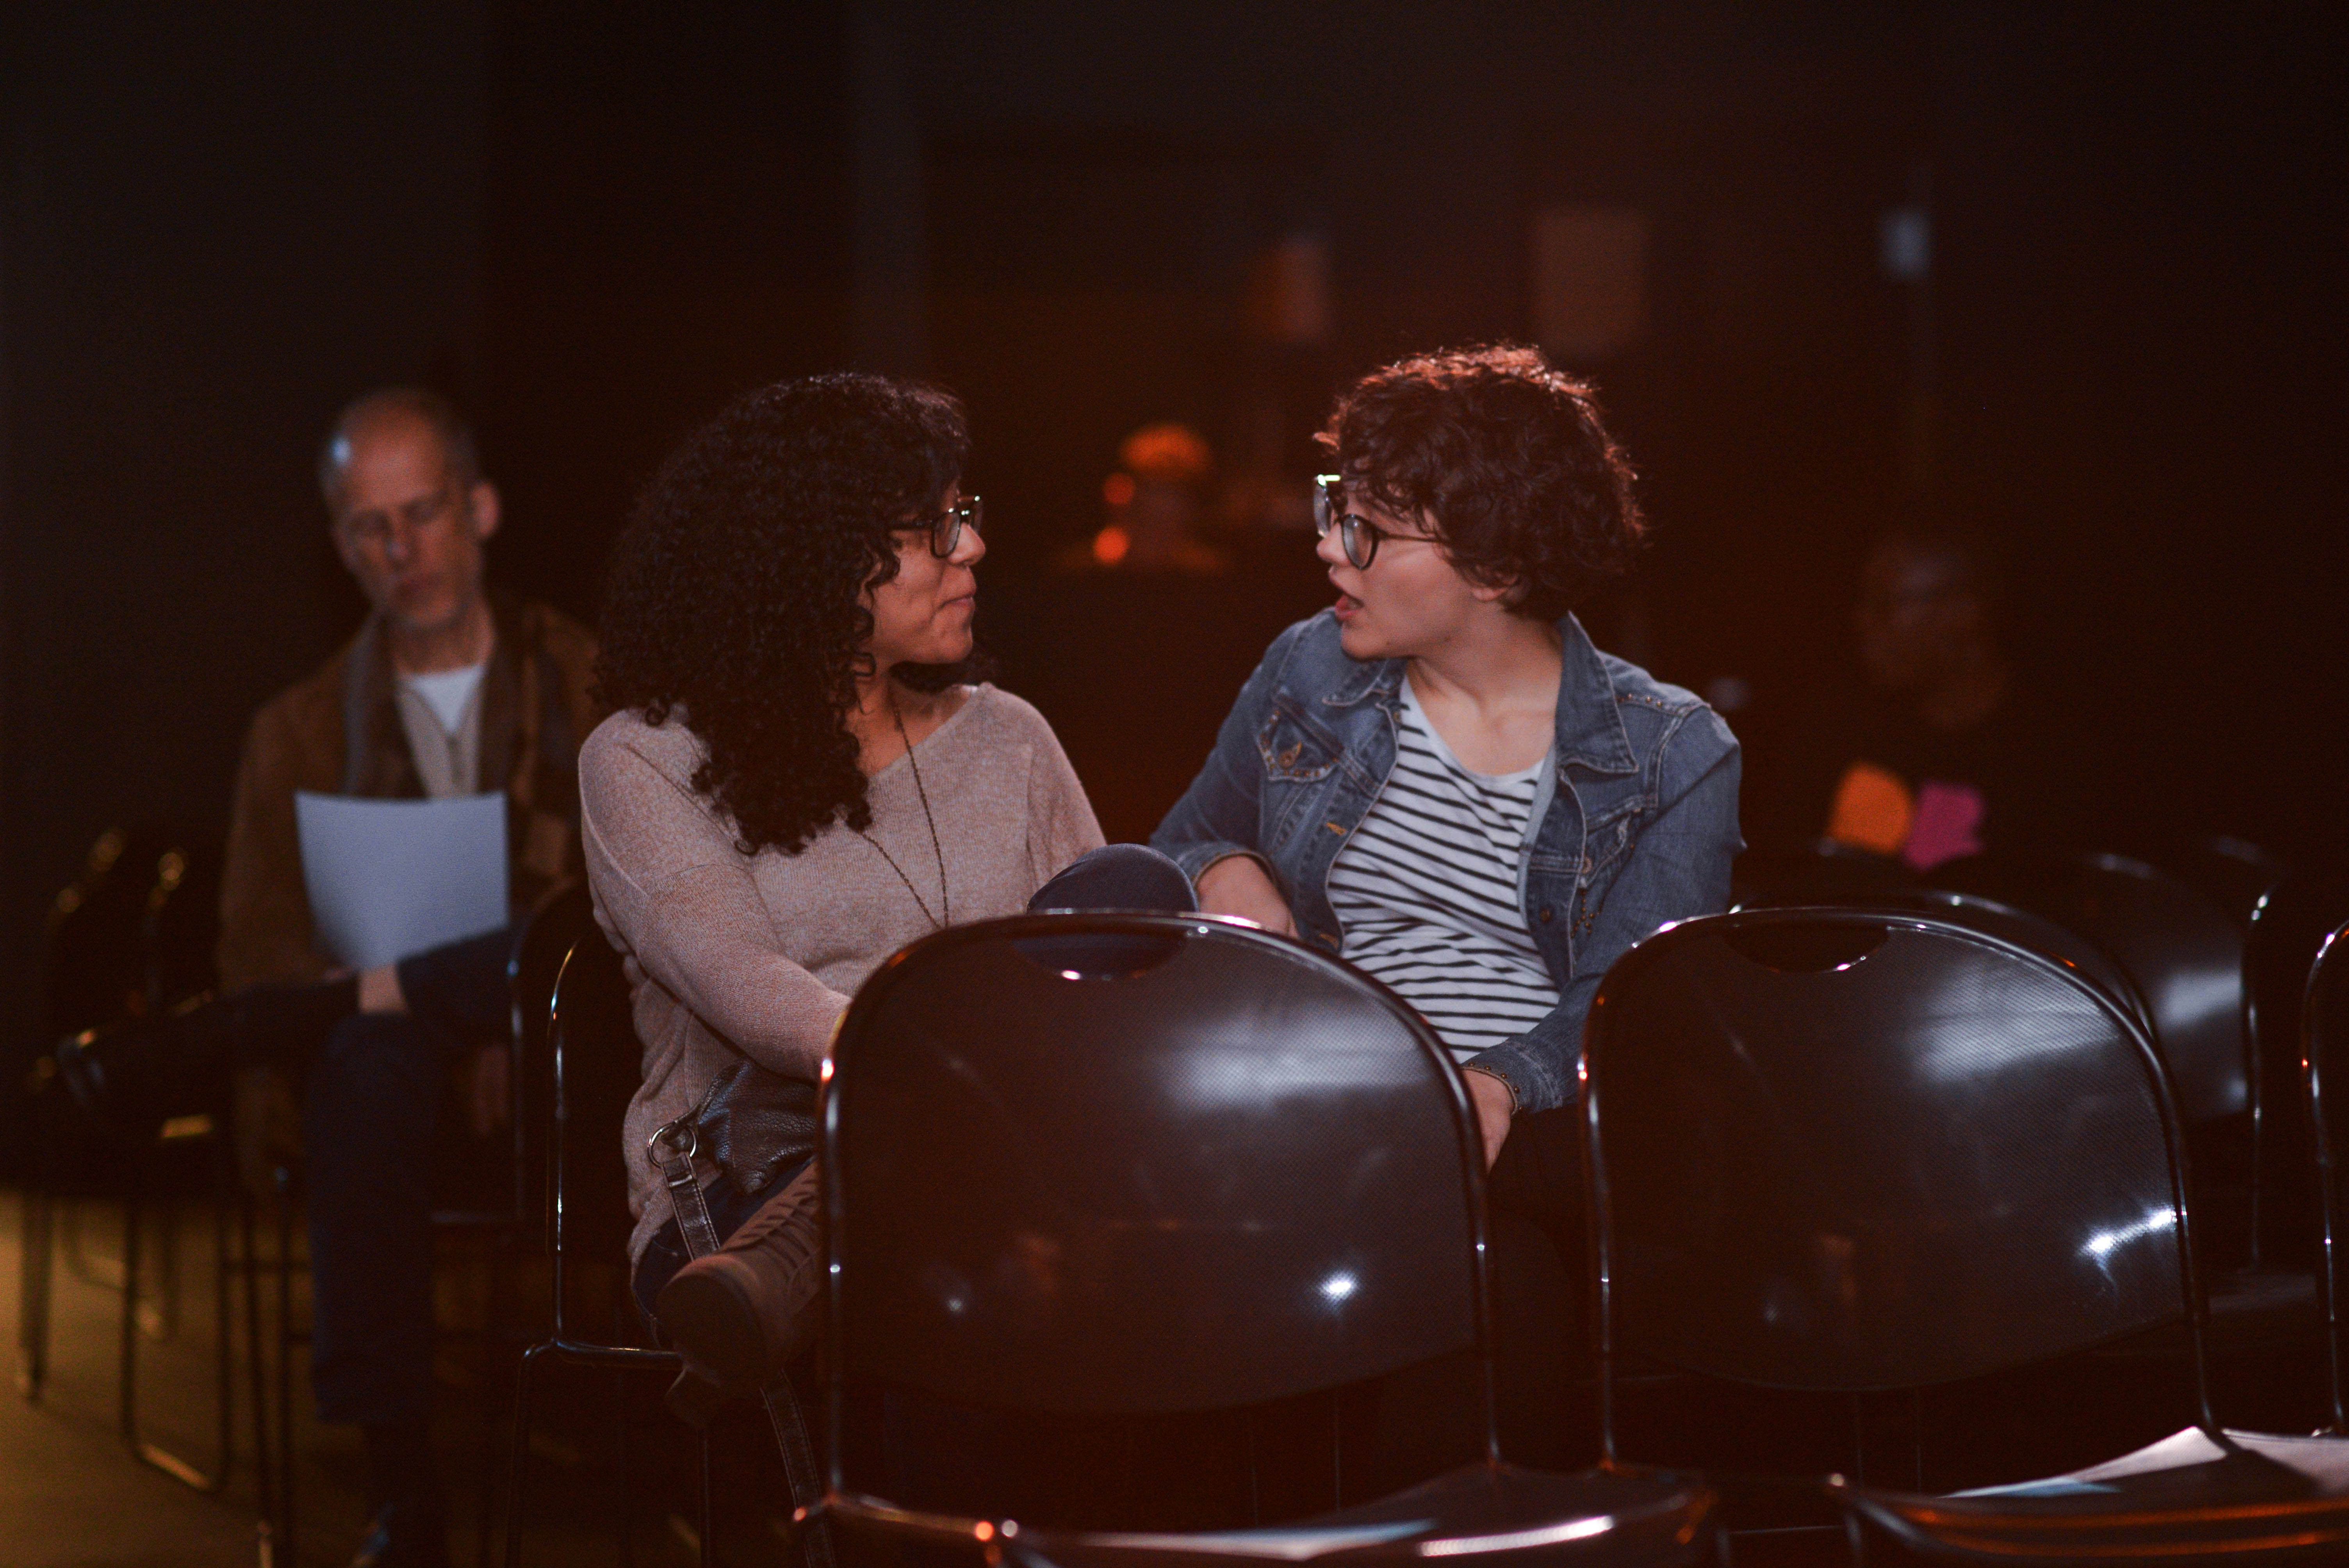 Two women seated together and talking in the Black Box Theatre in Denton, Texas.